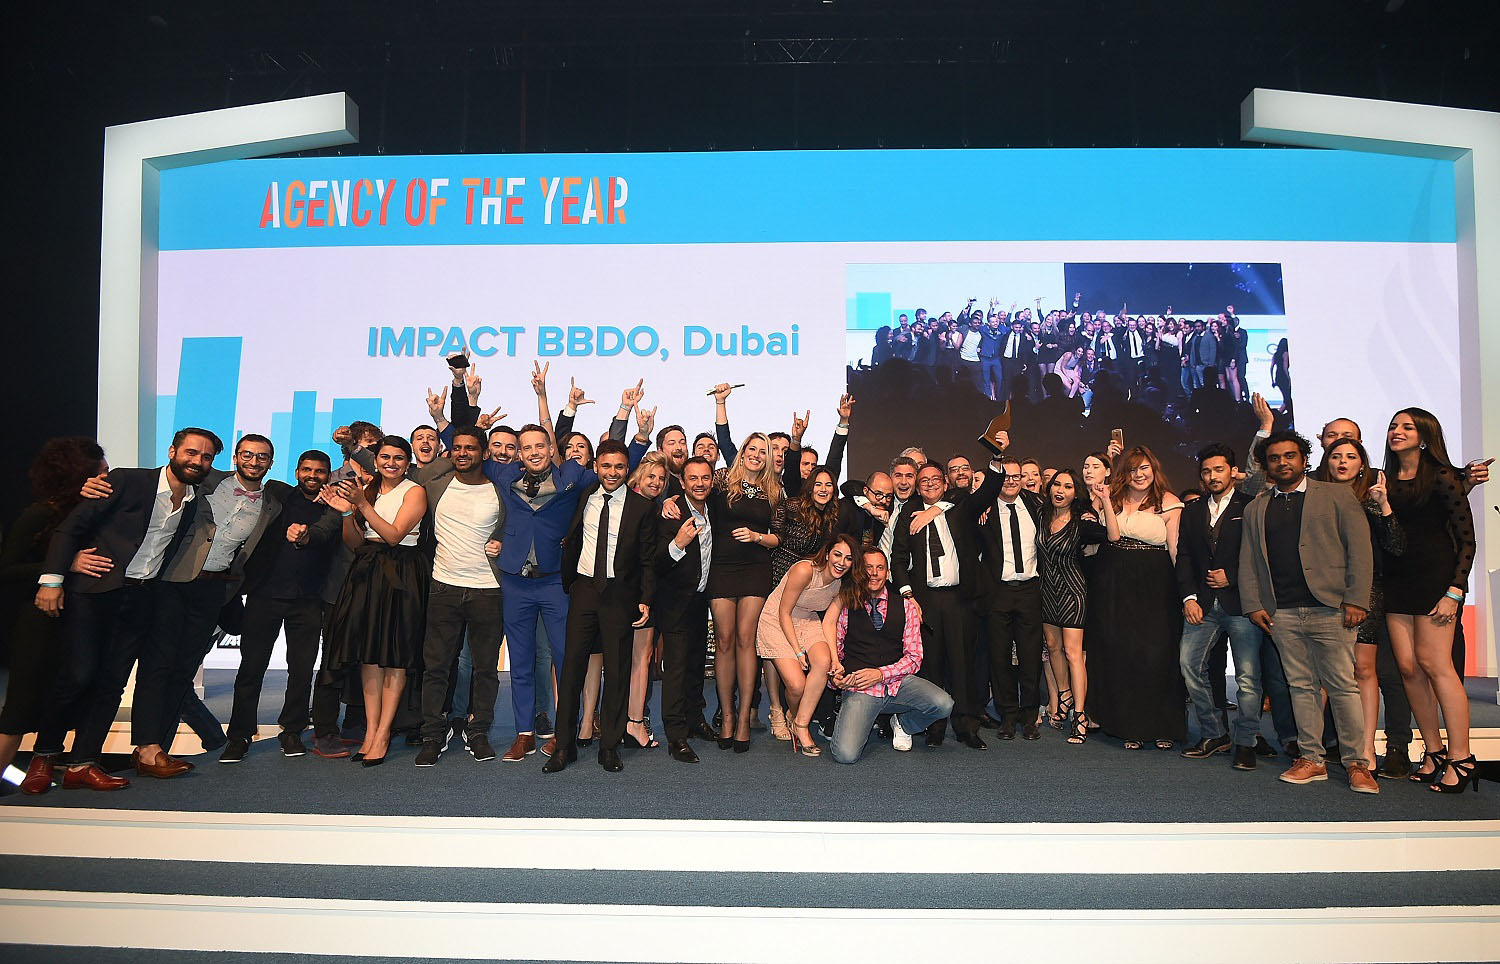 Impact-BBDO-Crowned-Agency-of-the-Year-at-Dubai-Lynx-2017.jpg